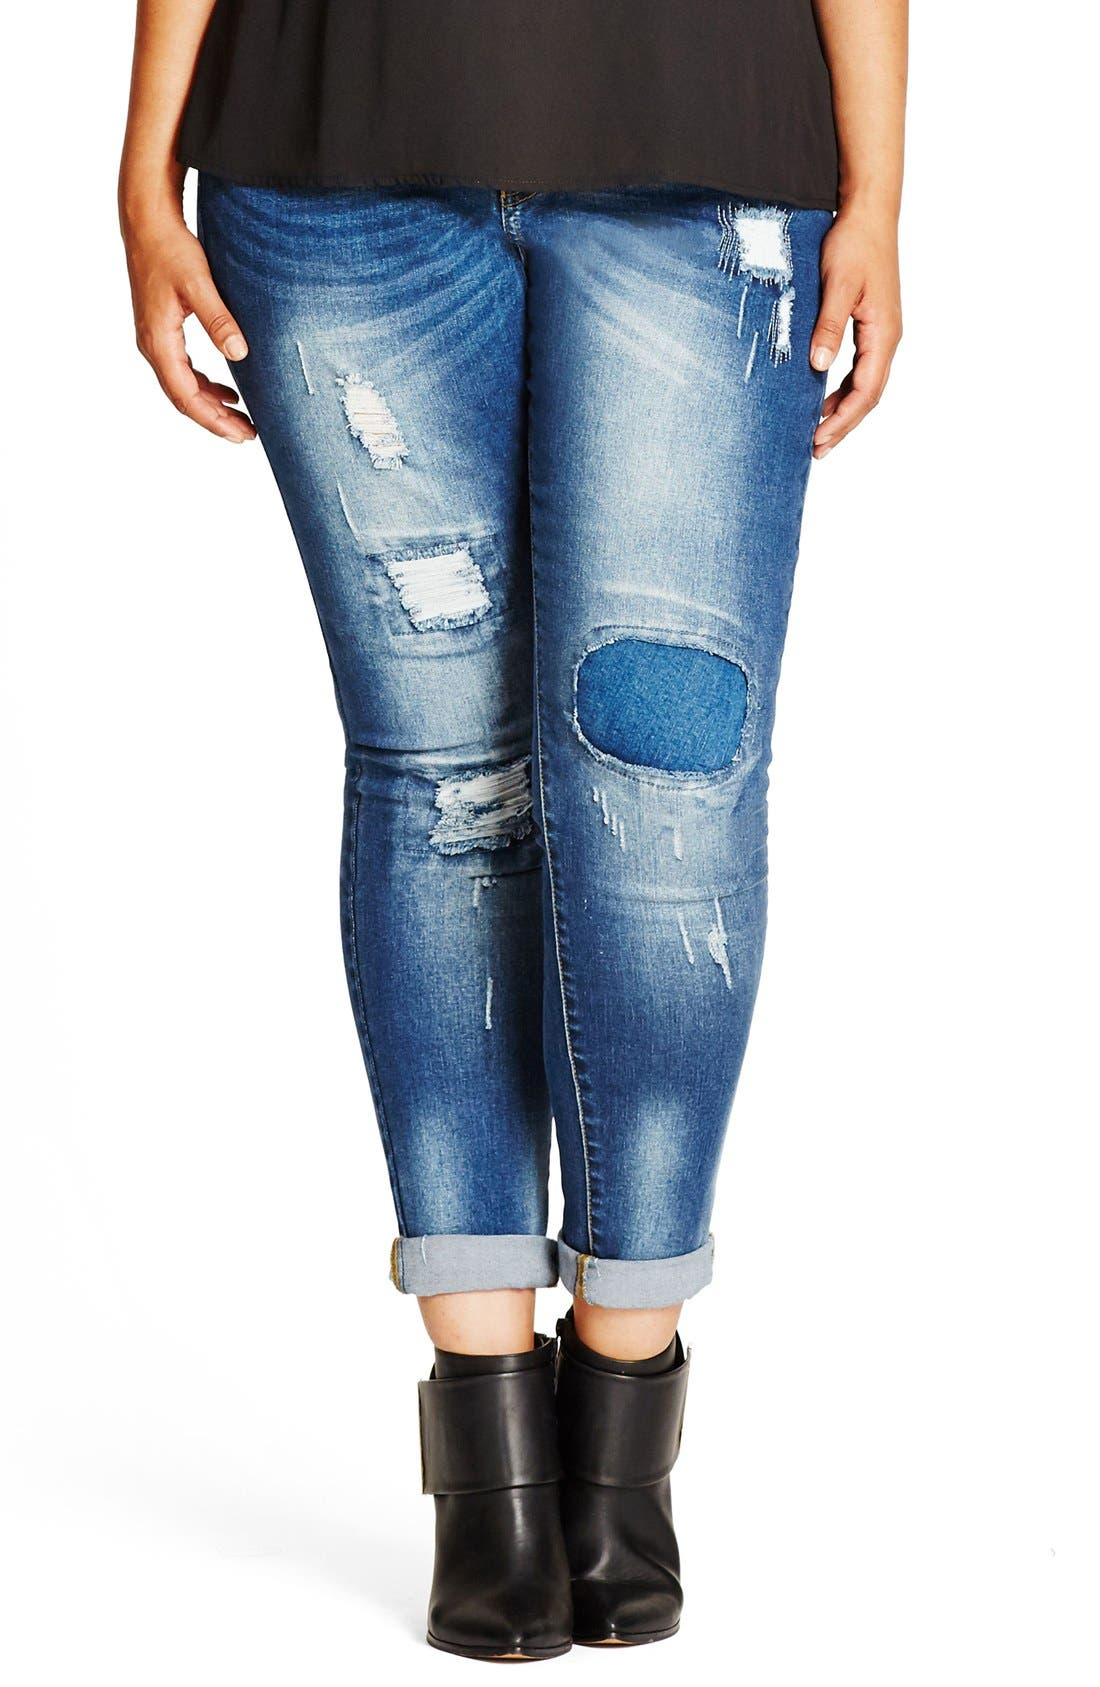 Alternate Image 1 Selected - City Chic Patched Up Distressed Skinny Jeans (Plus Size)